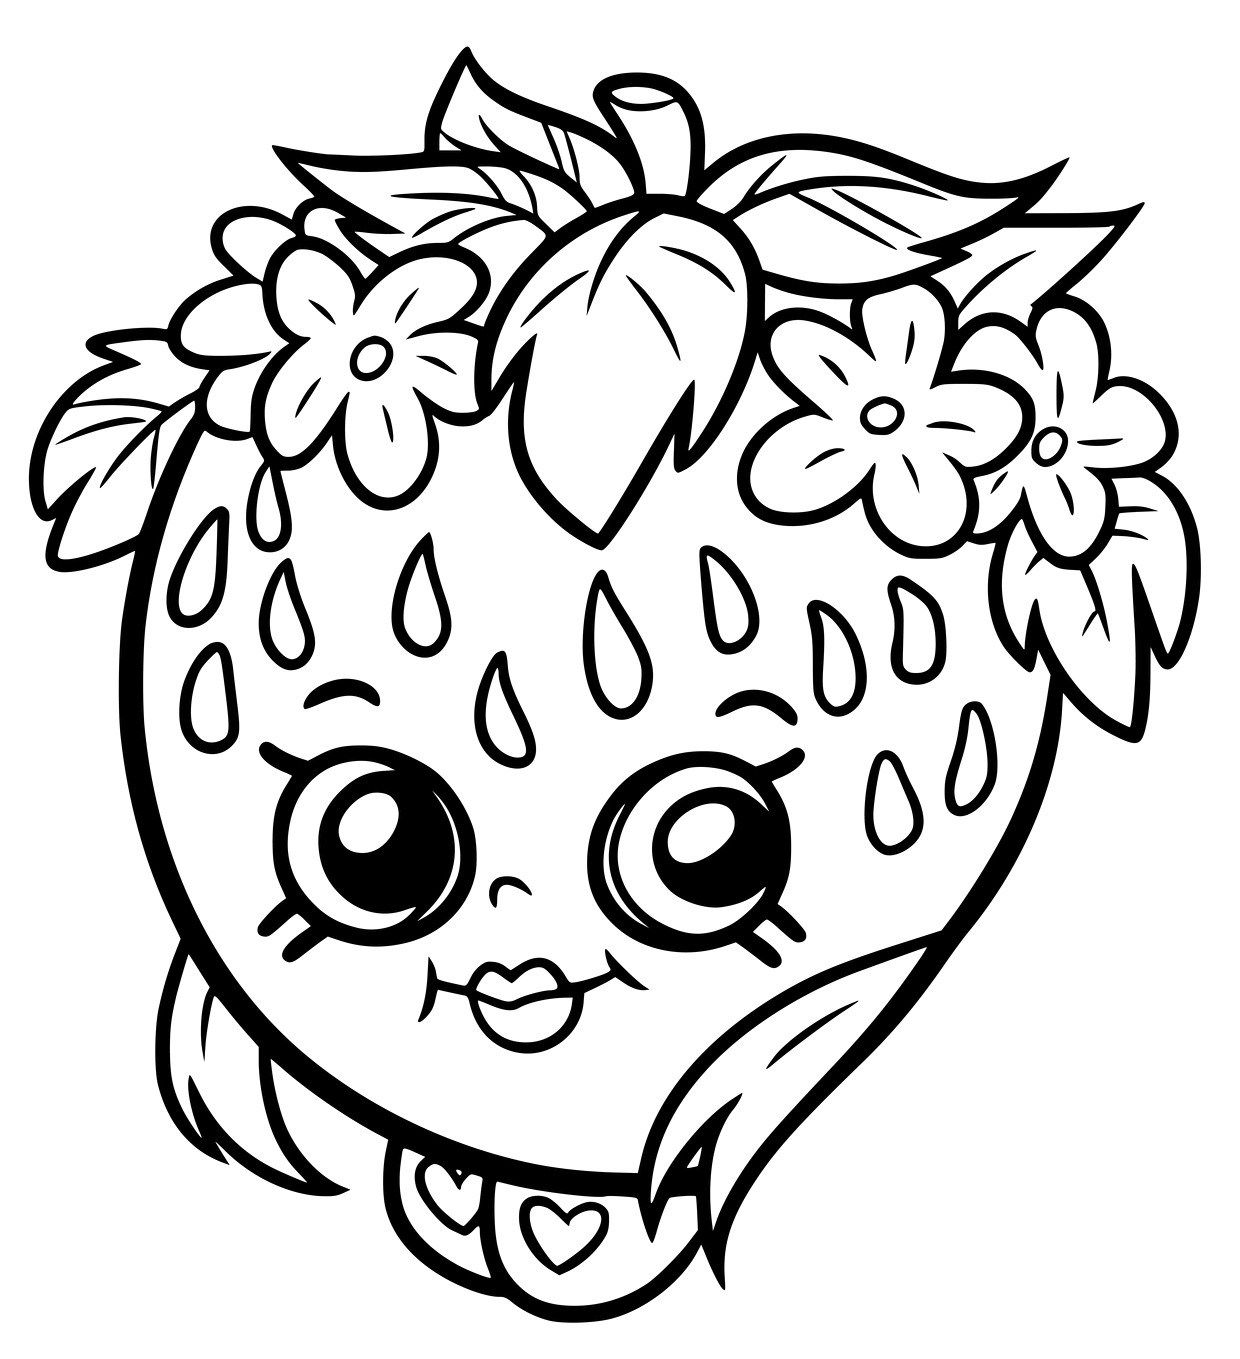 18+ Best Picture of Free Shopkins Coloring Pages - davemelillo.com